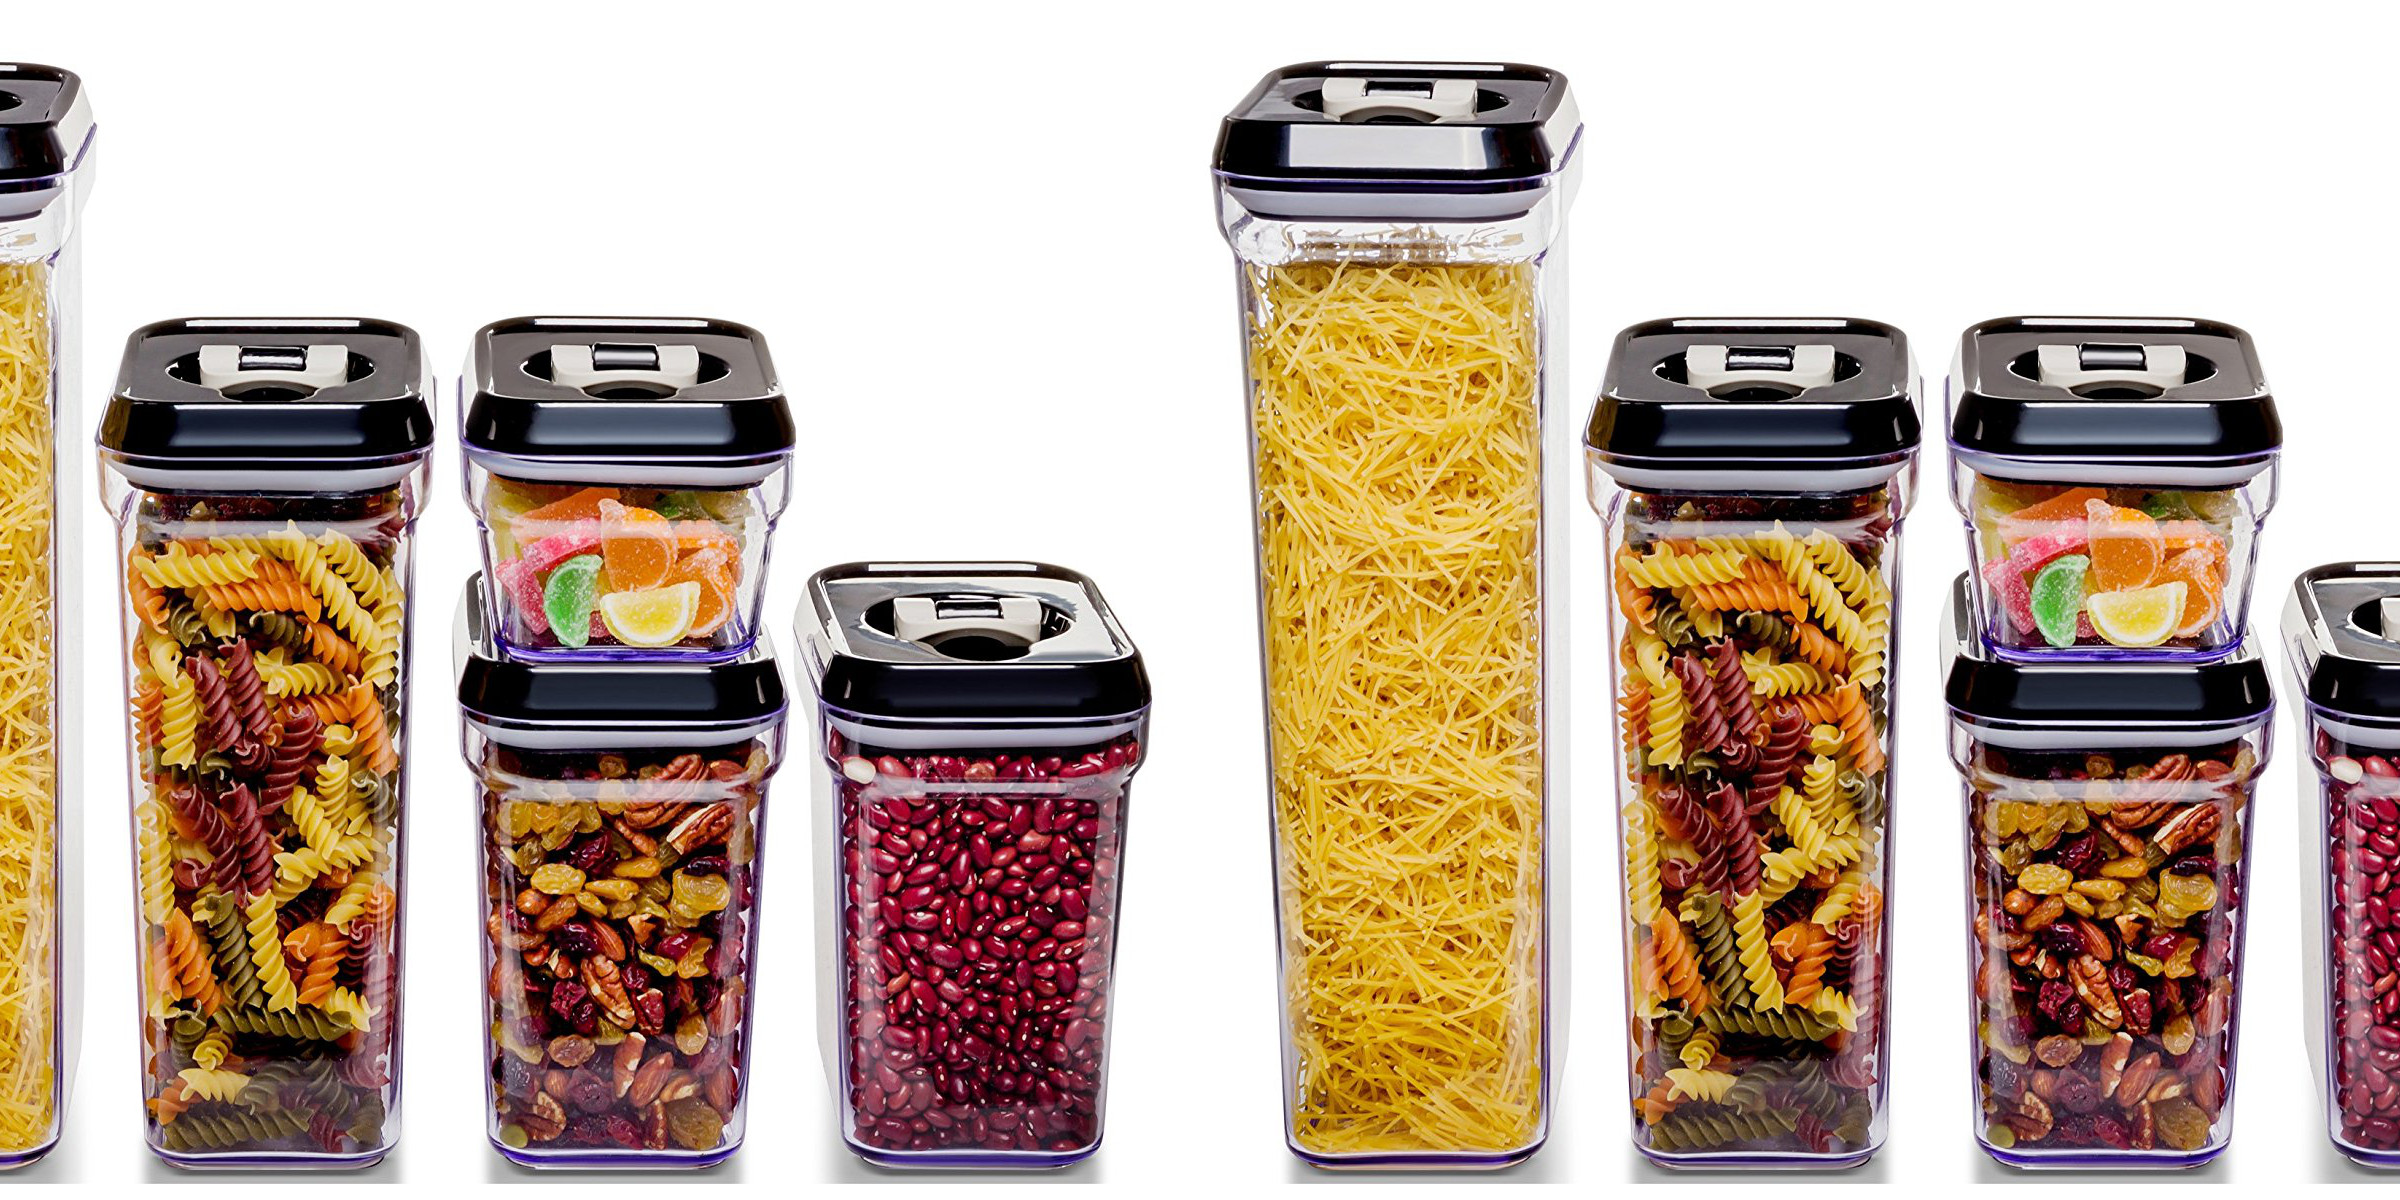 The Royal Air-Tight Food Storage Container Set drops to just $19.50 w/ this promo code